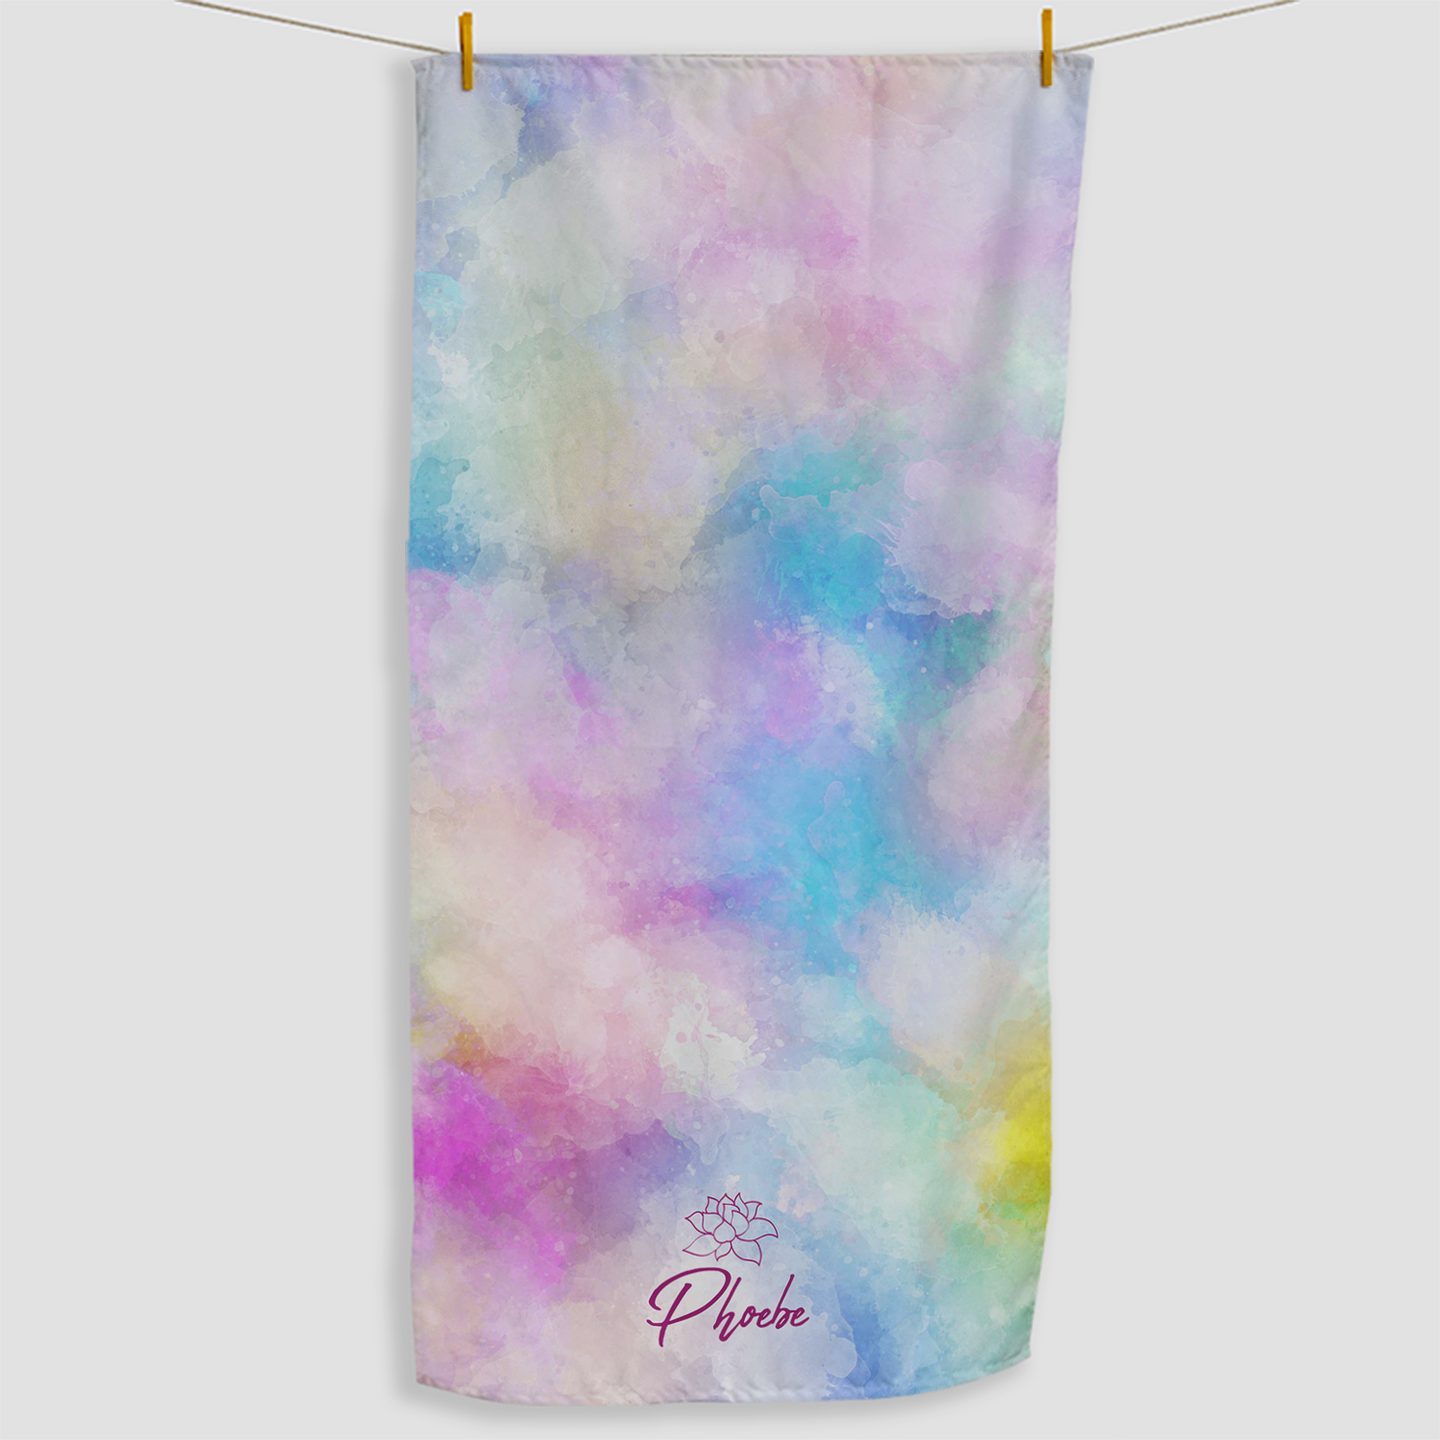 Rainbow Cloud Towel - Haddow Group